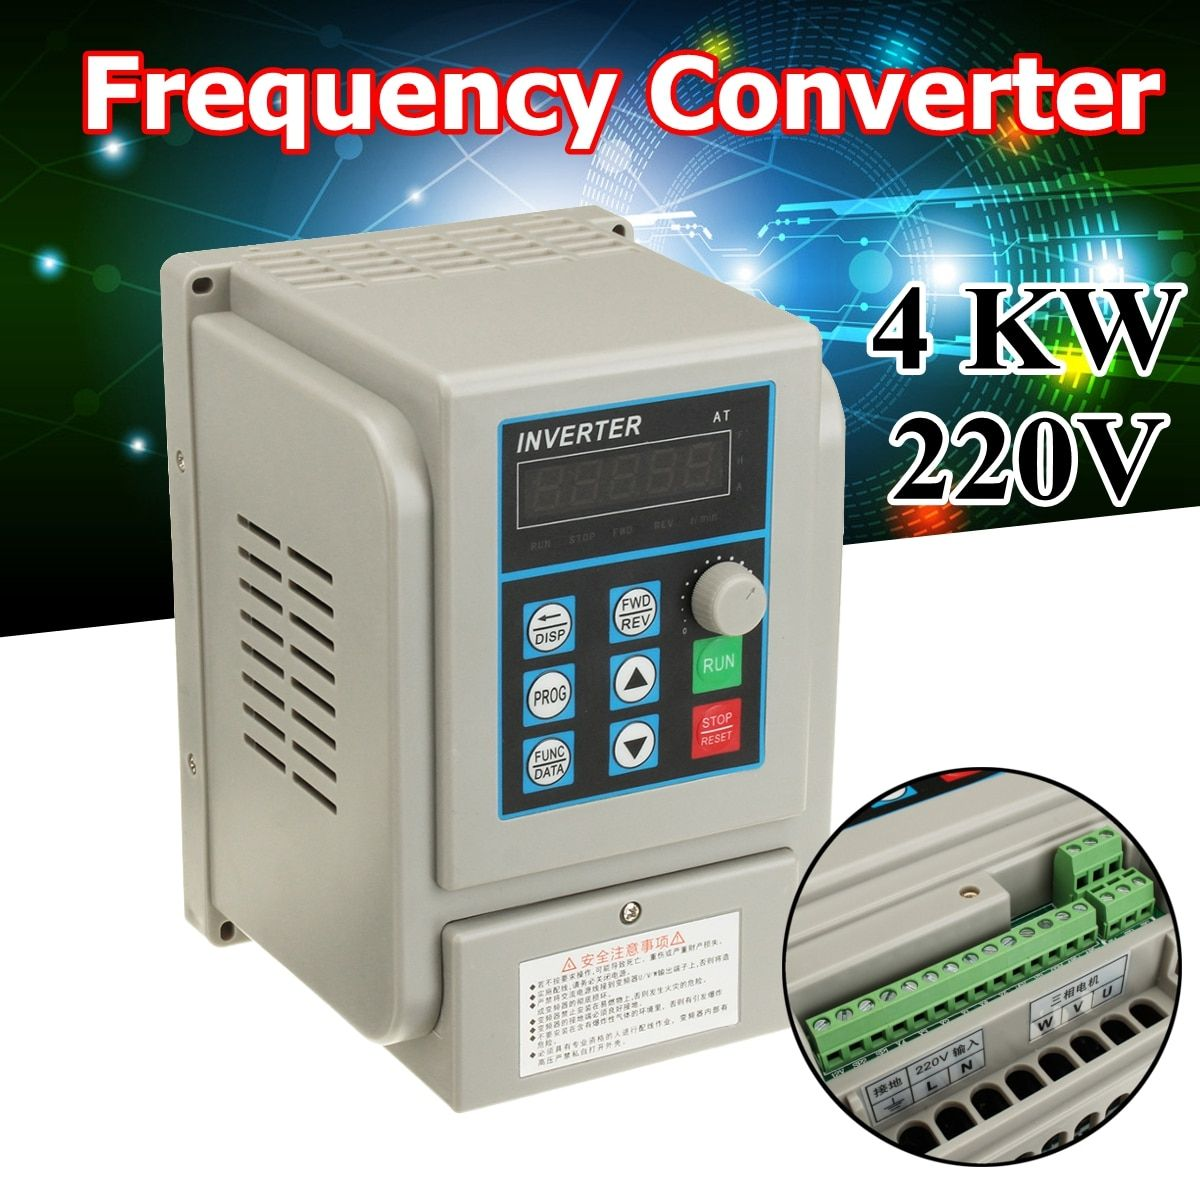 AC 220V Frequency Converter 4KW Variable Frequency Drive Converter VFD Speed Controller Converter